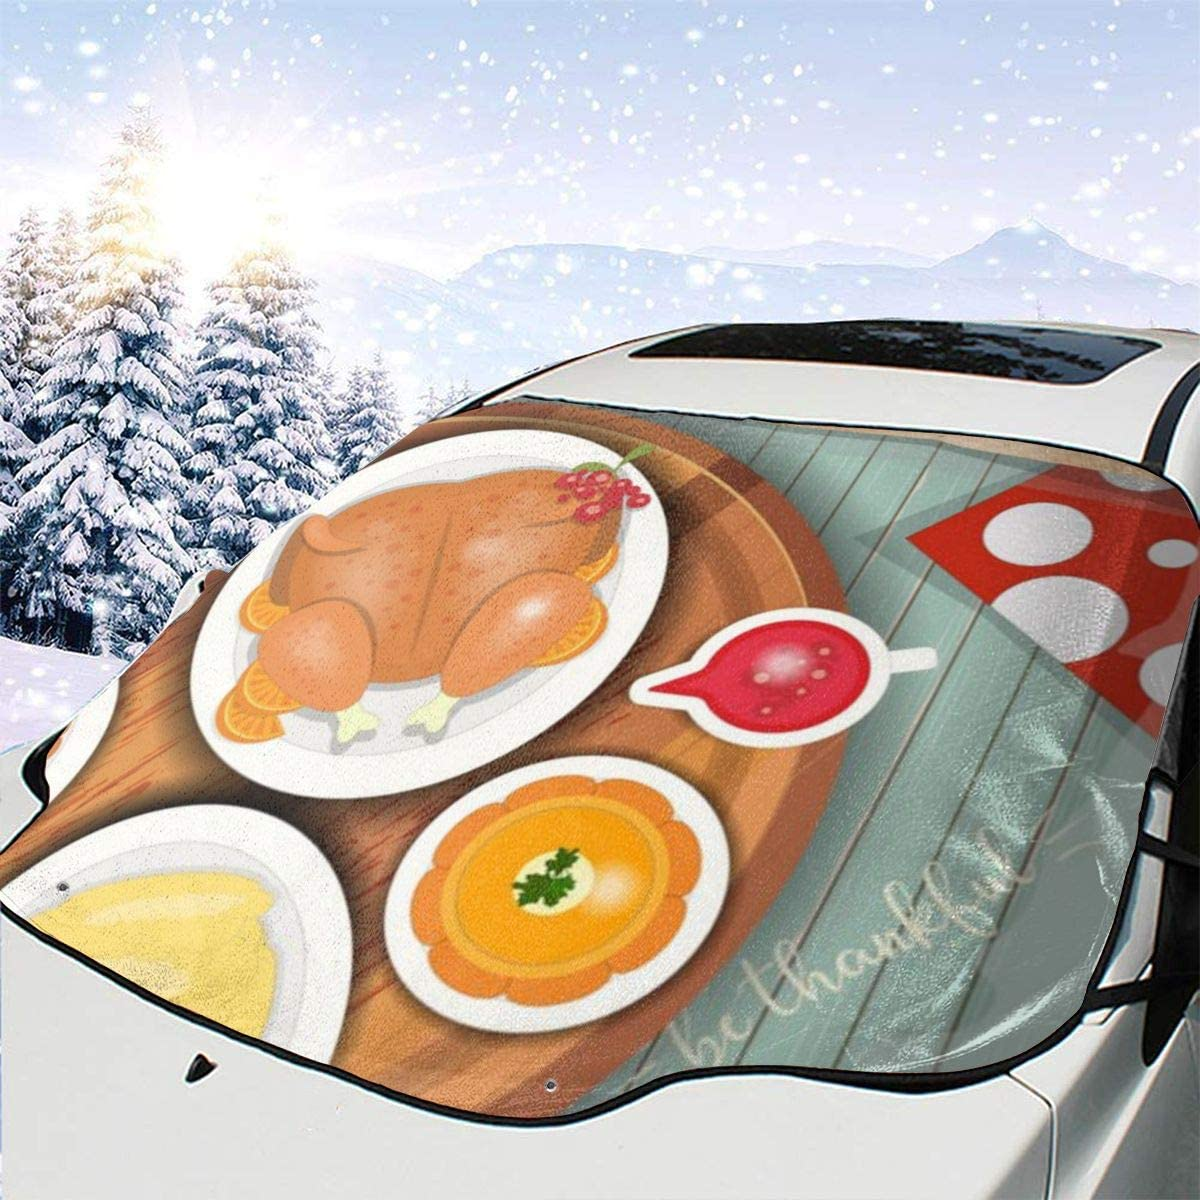 THONFIRE Car Front Window Windshields Ice Sun Shade Thanksgiving Day Greet Dinner Cover Snow Proof Blocks UV Rays Keeps Your Vehicle Cool Visor Protector Trucks Autumn Heat Insulation